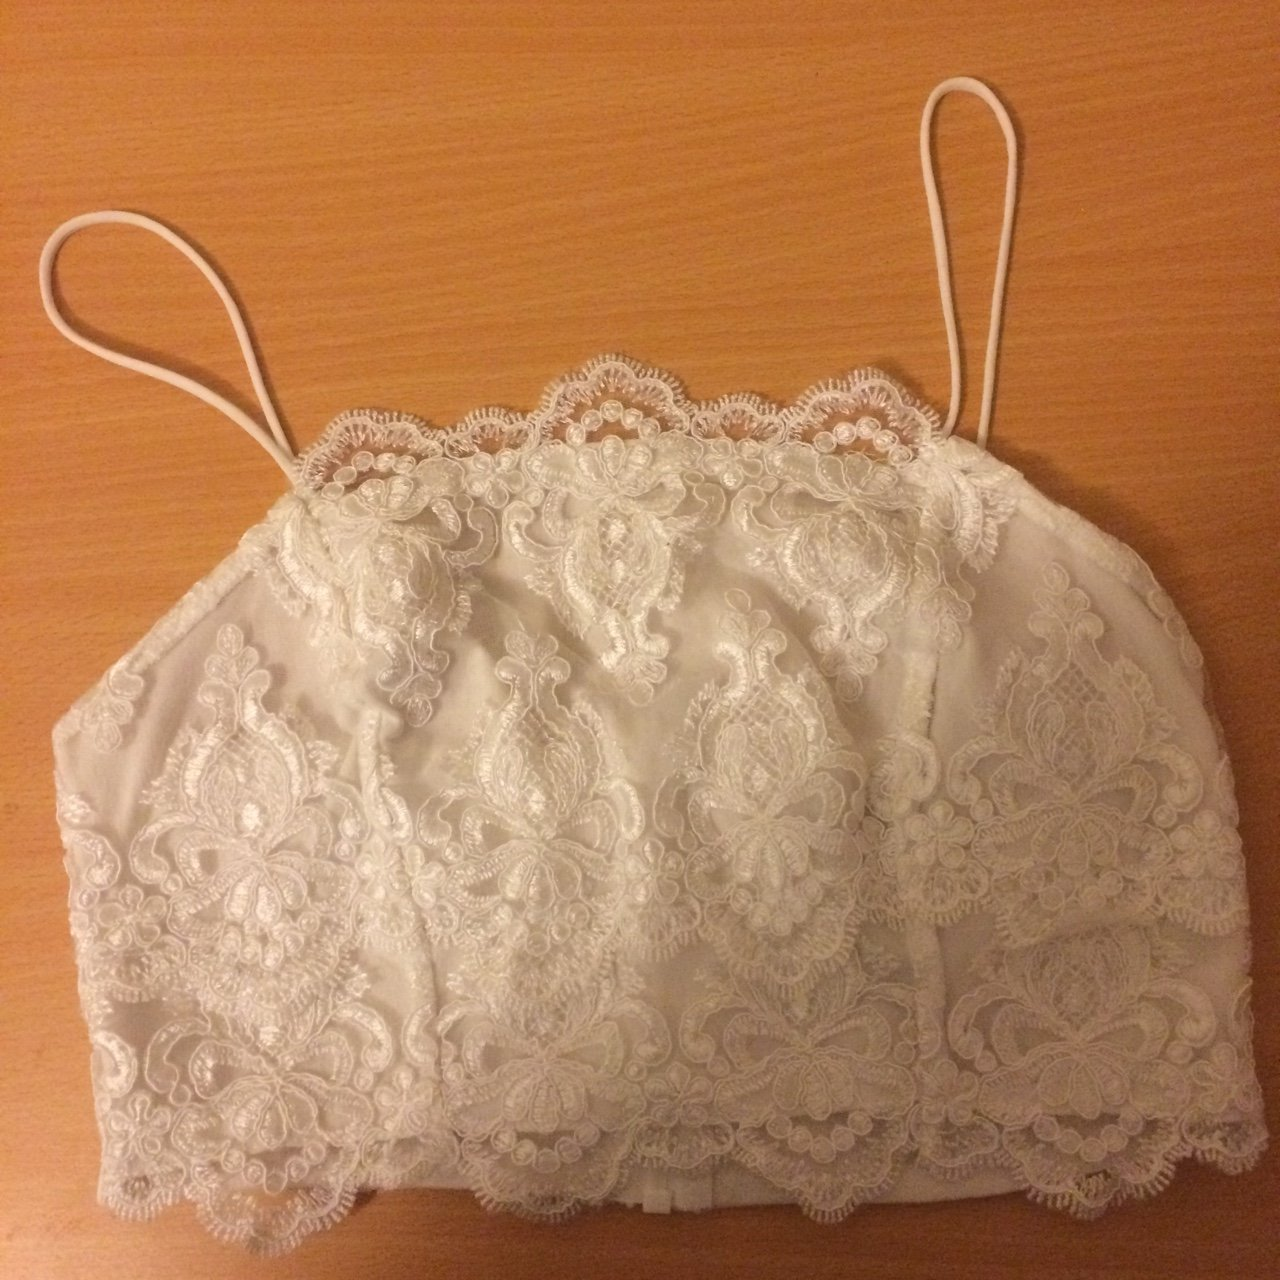 24437348ae7d93 Topshop white embroidered bralet crop top. UK women s size - Depop